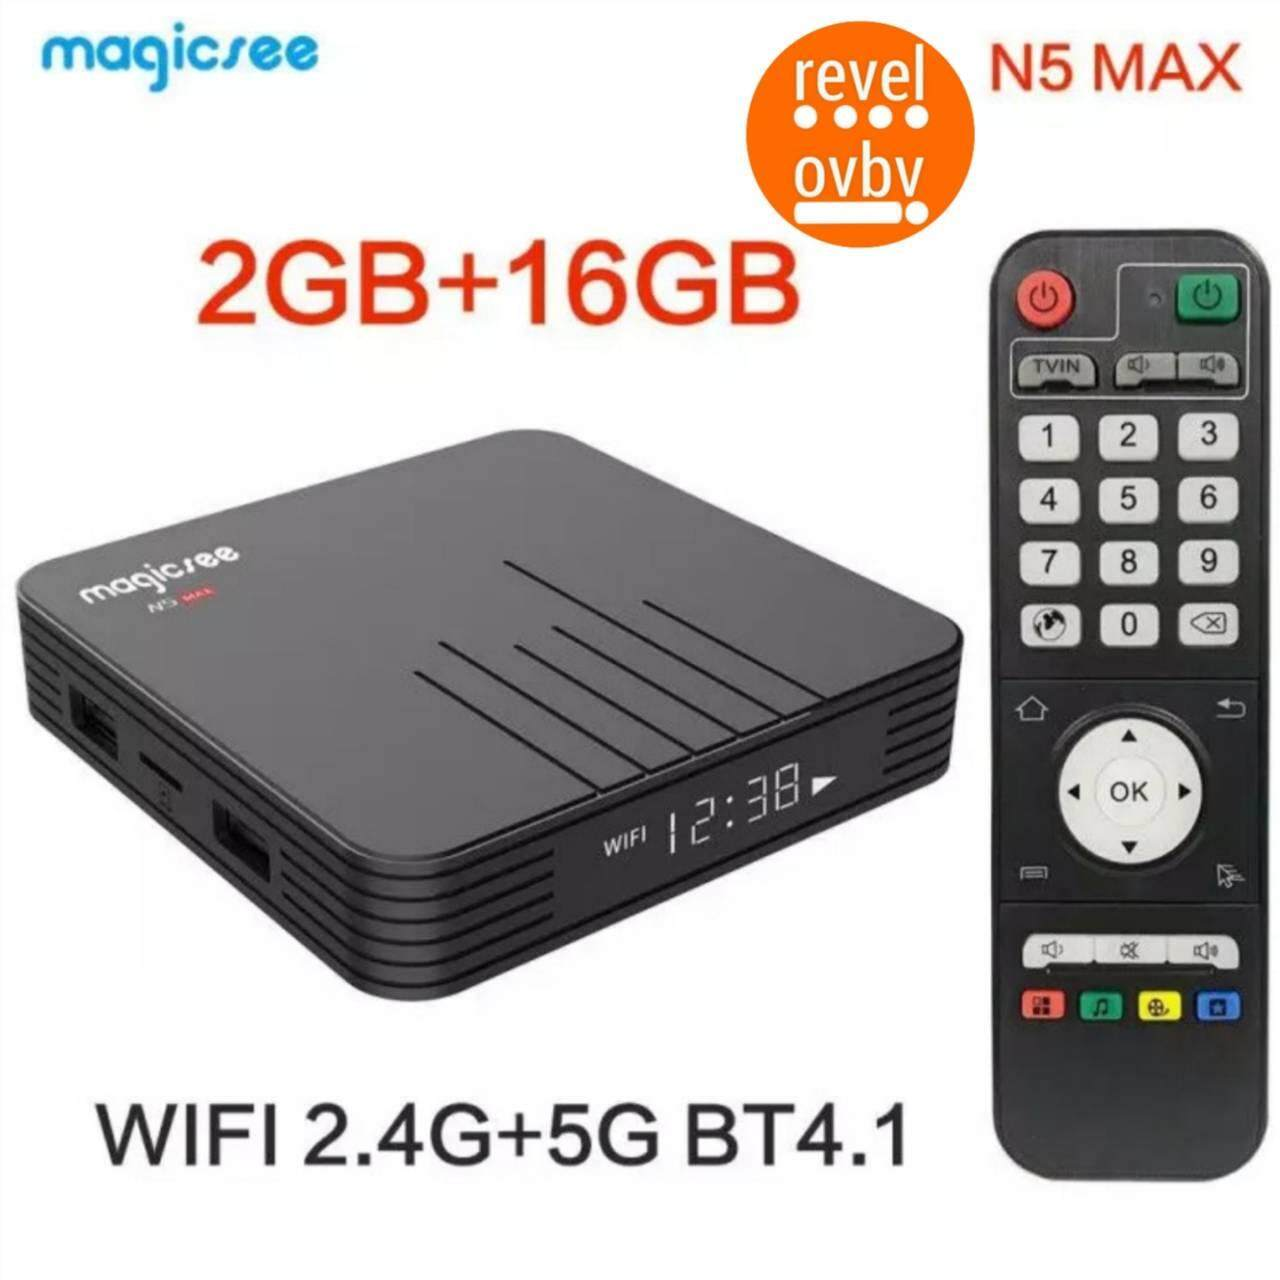 สอนใช้งาน  อุบลราชธานี Magicsee N5 Max Amlogic S905X2 Android 9.0 TV BOX 4G 32G/64G Rom 2.4+5G Dual Wifi Bluetooth4.1 Smart Box 4K LAN 1000 Set Top Box